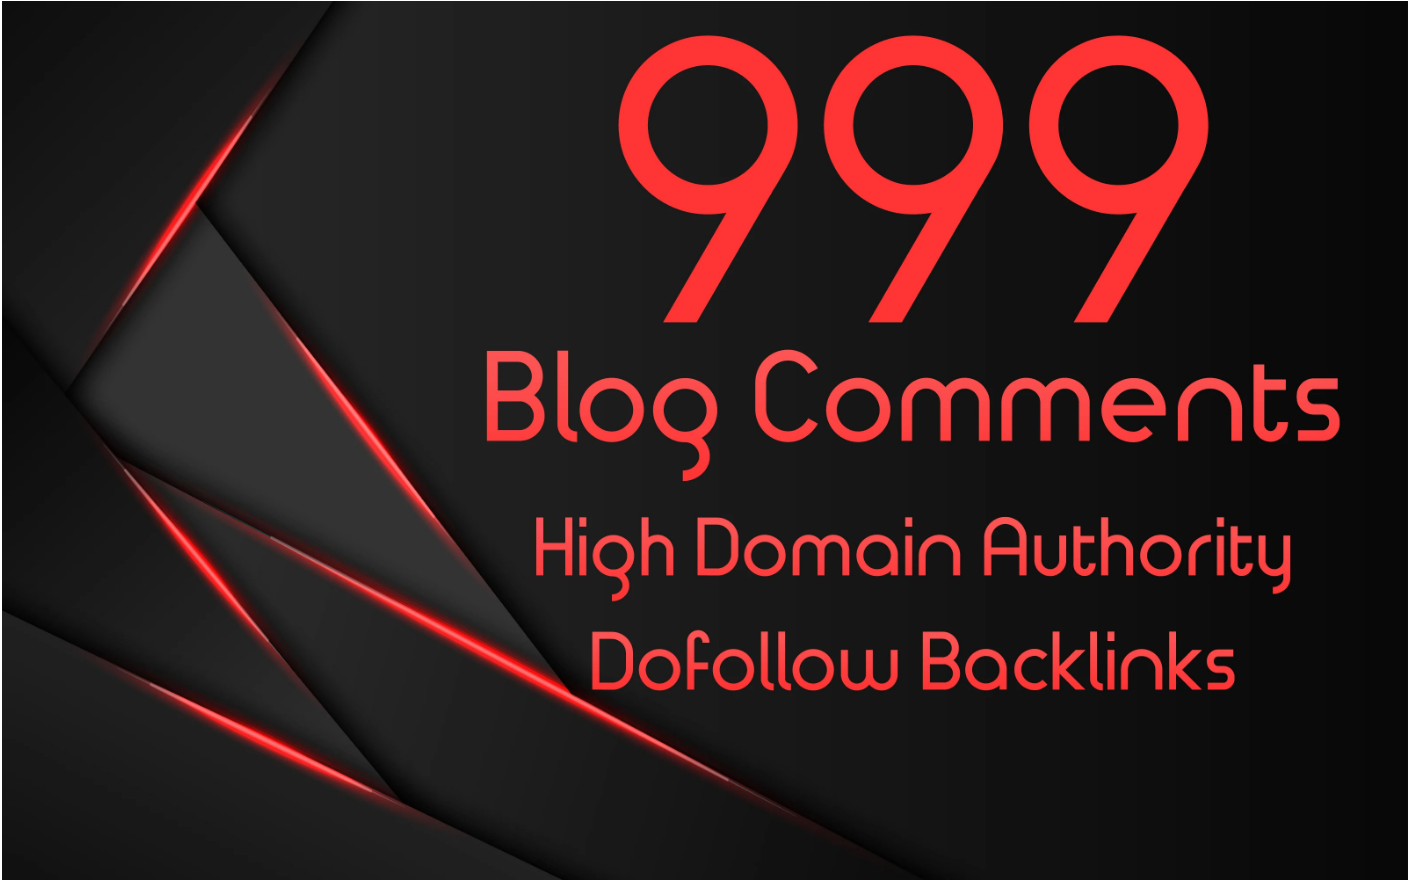 I will Create 999 Dofollow Blog Comments backlinks on high DA 20+ to 100